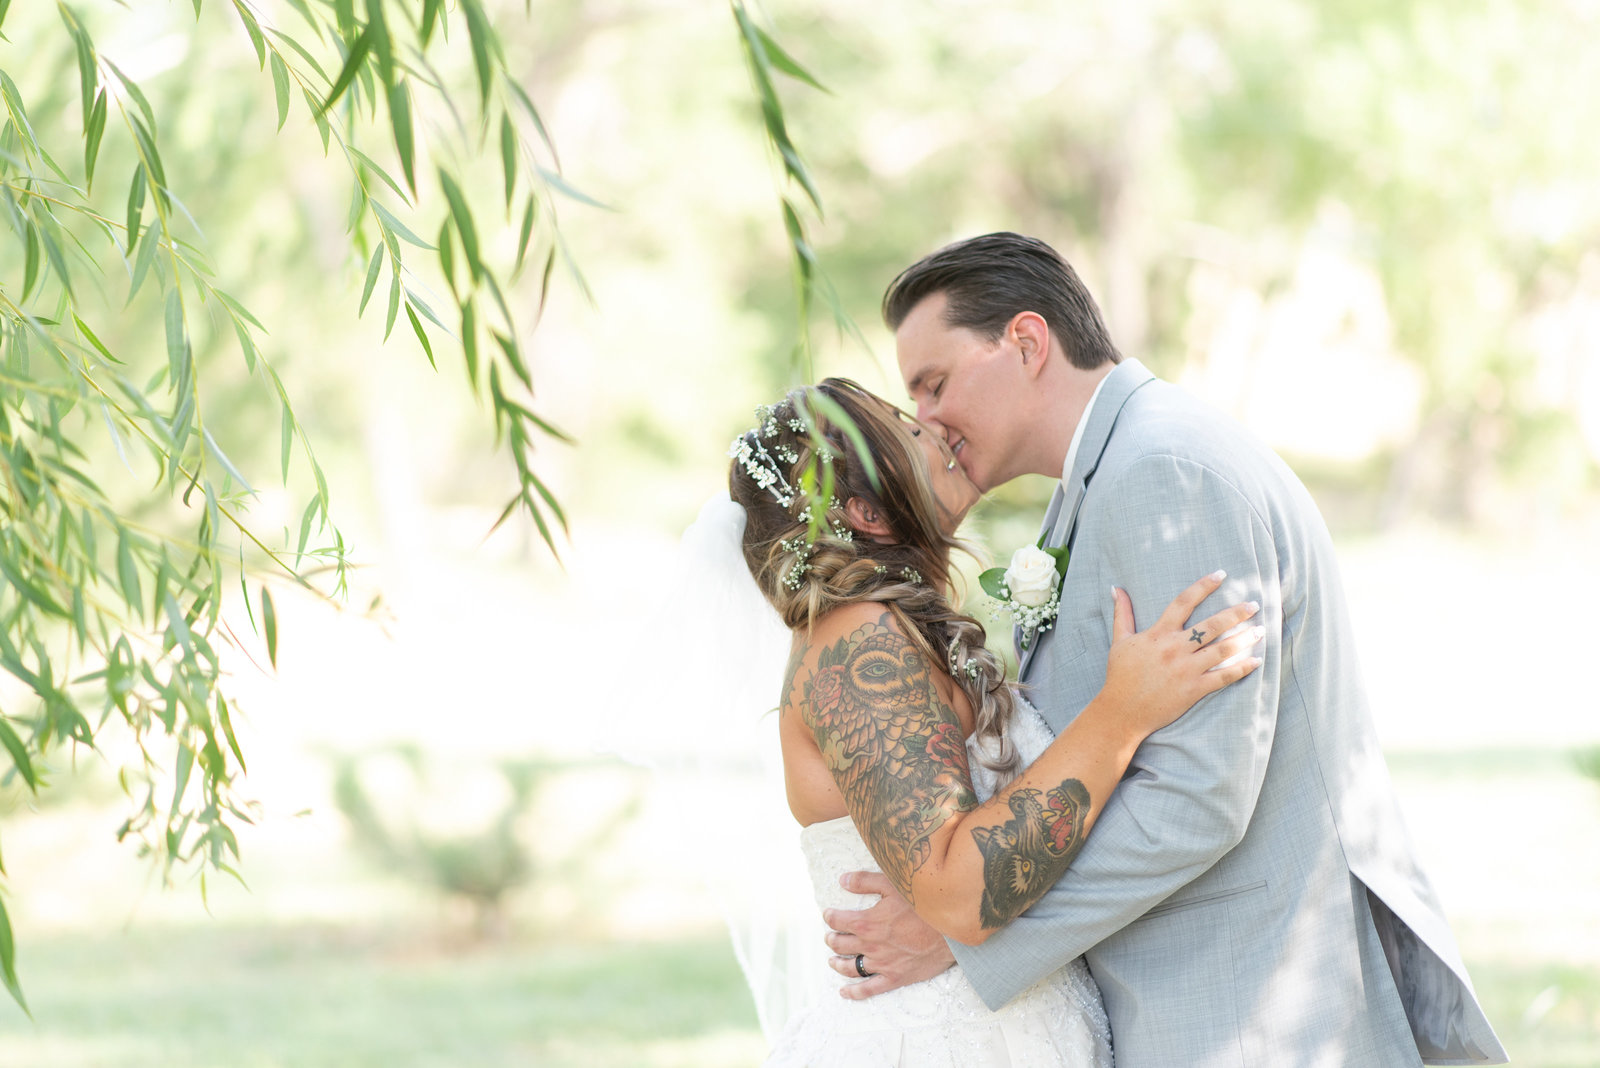 Bride and groom kissing under a willow tree Byers, Colorado